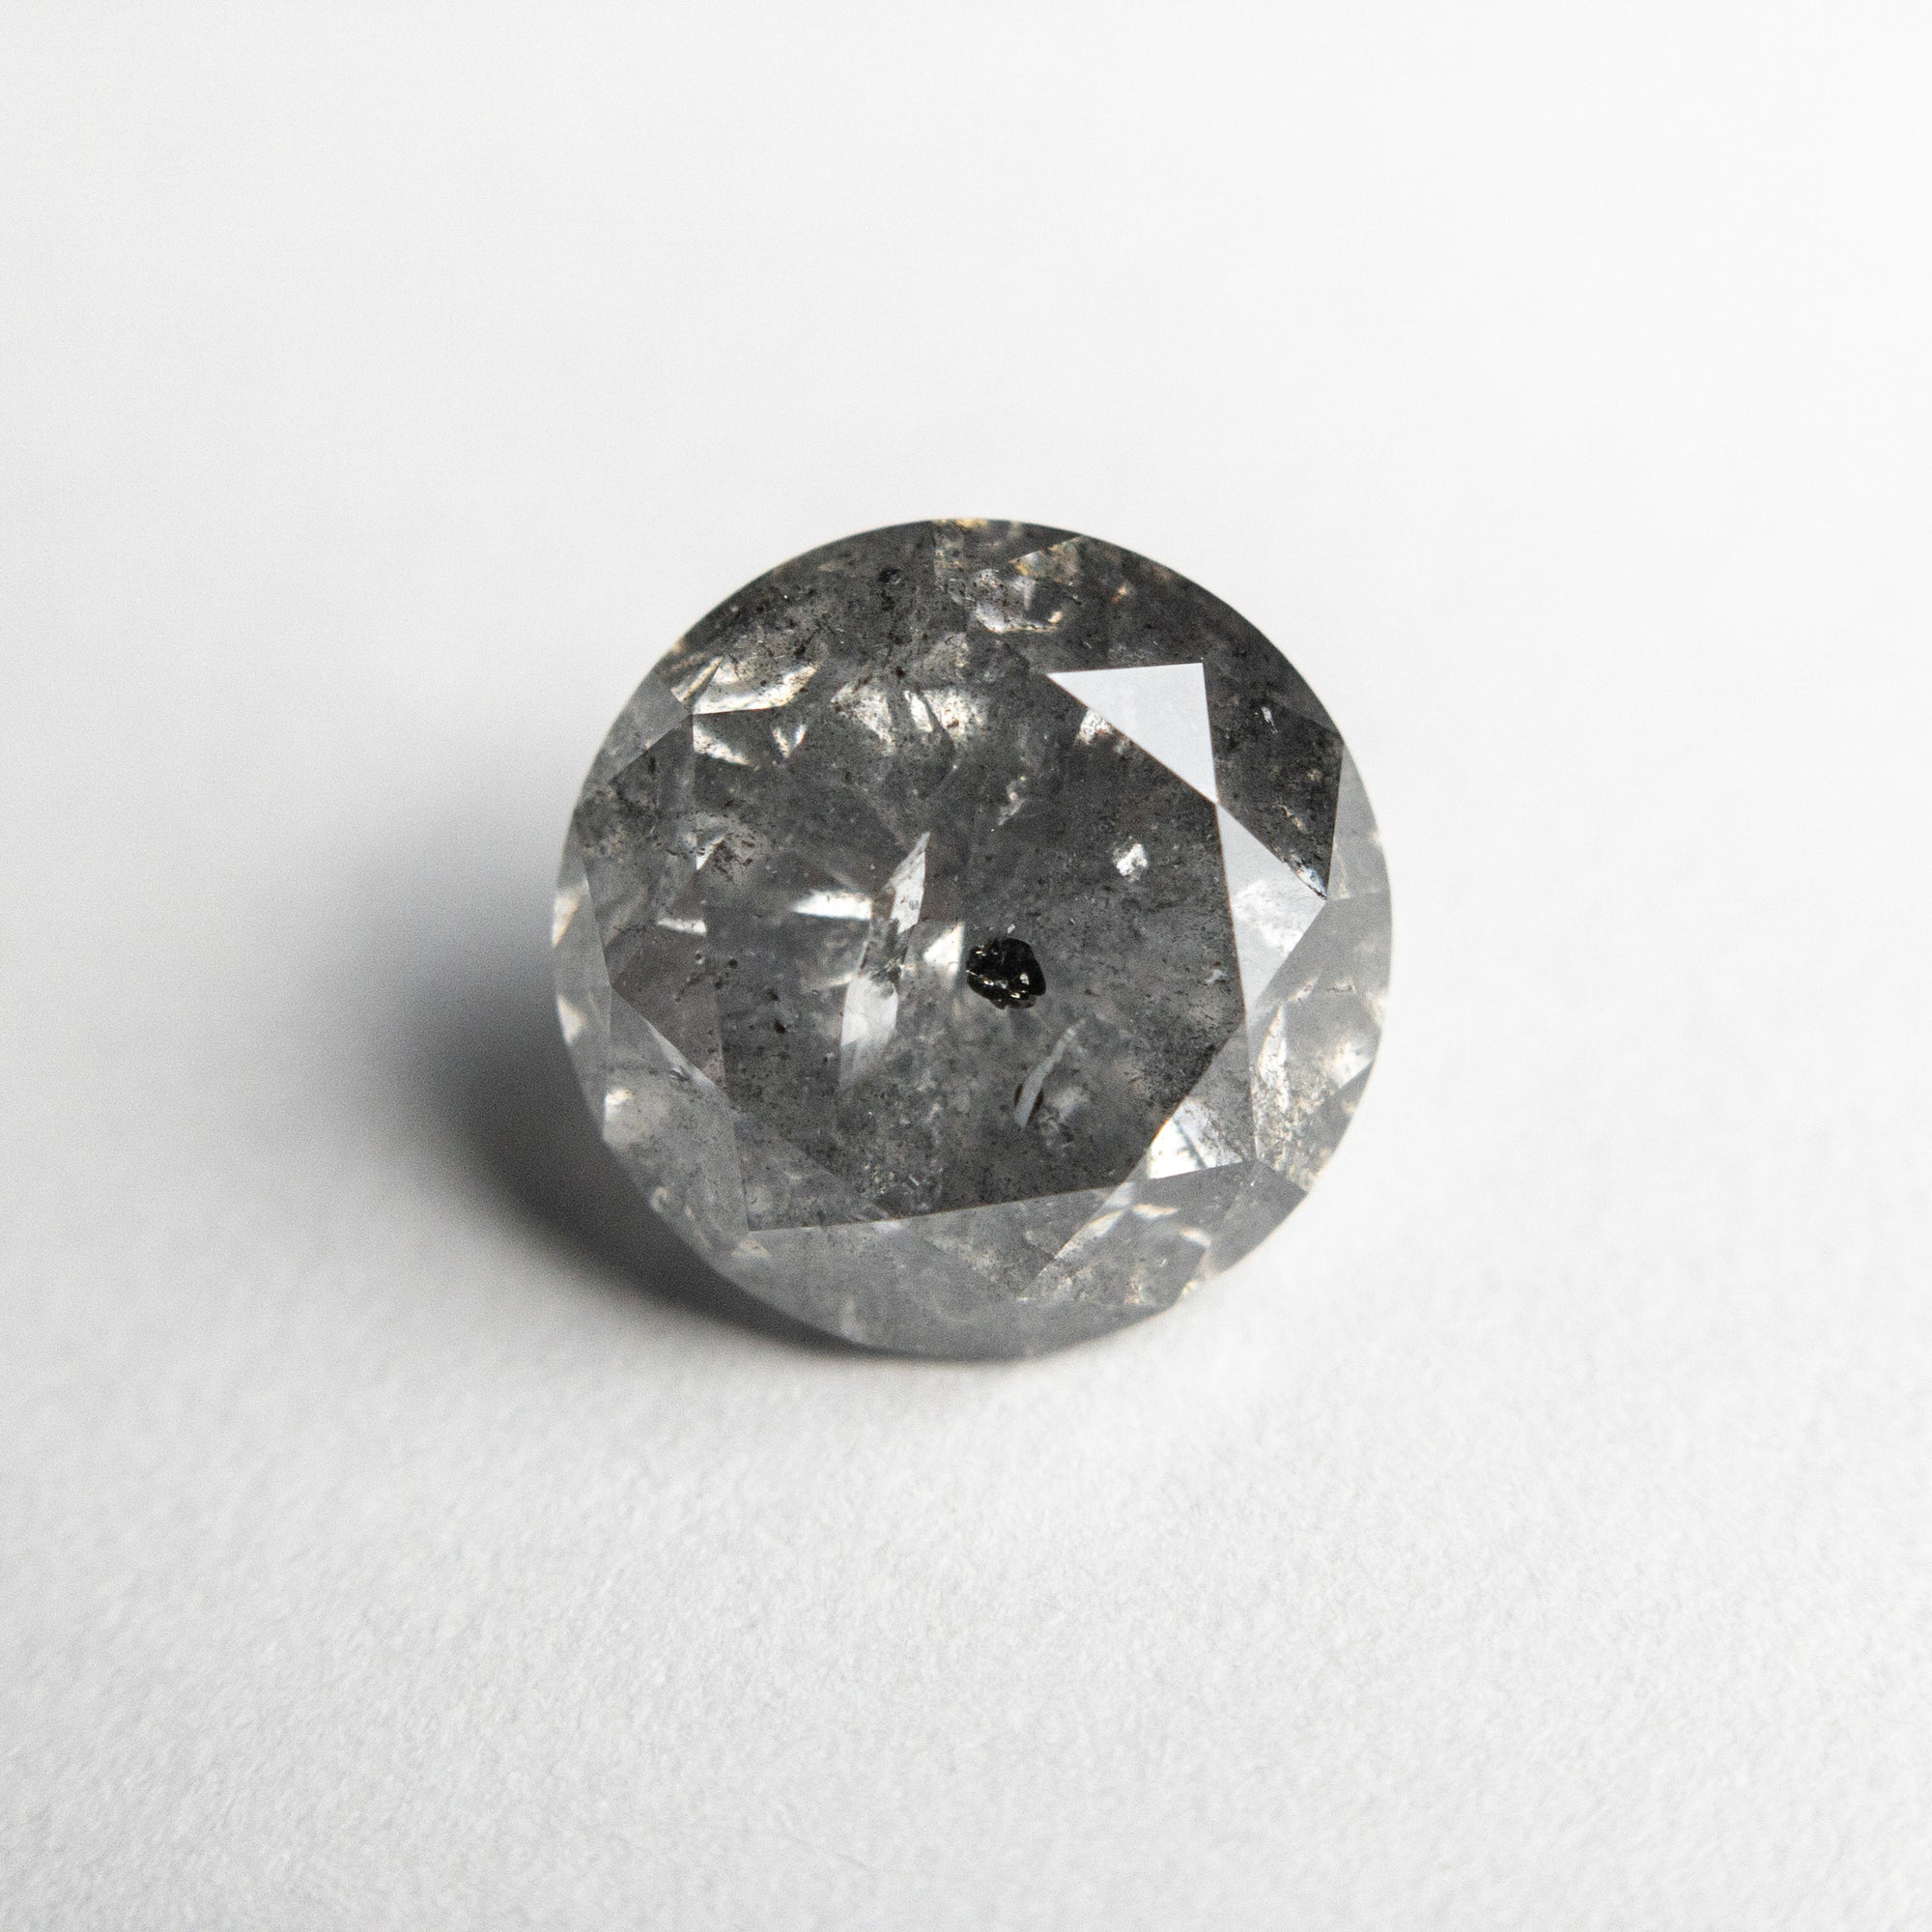 2.98ct 8.55x8.53x5.97mm Round Brilliant 18409-01